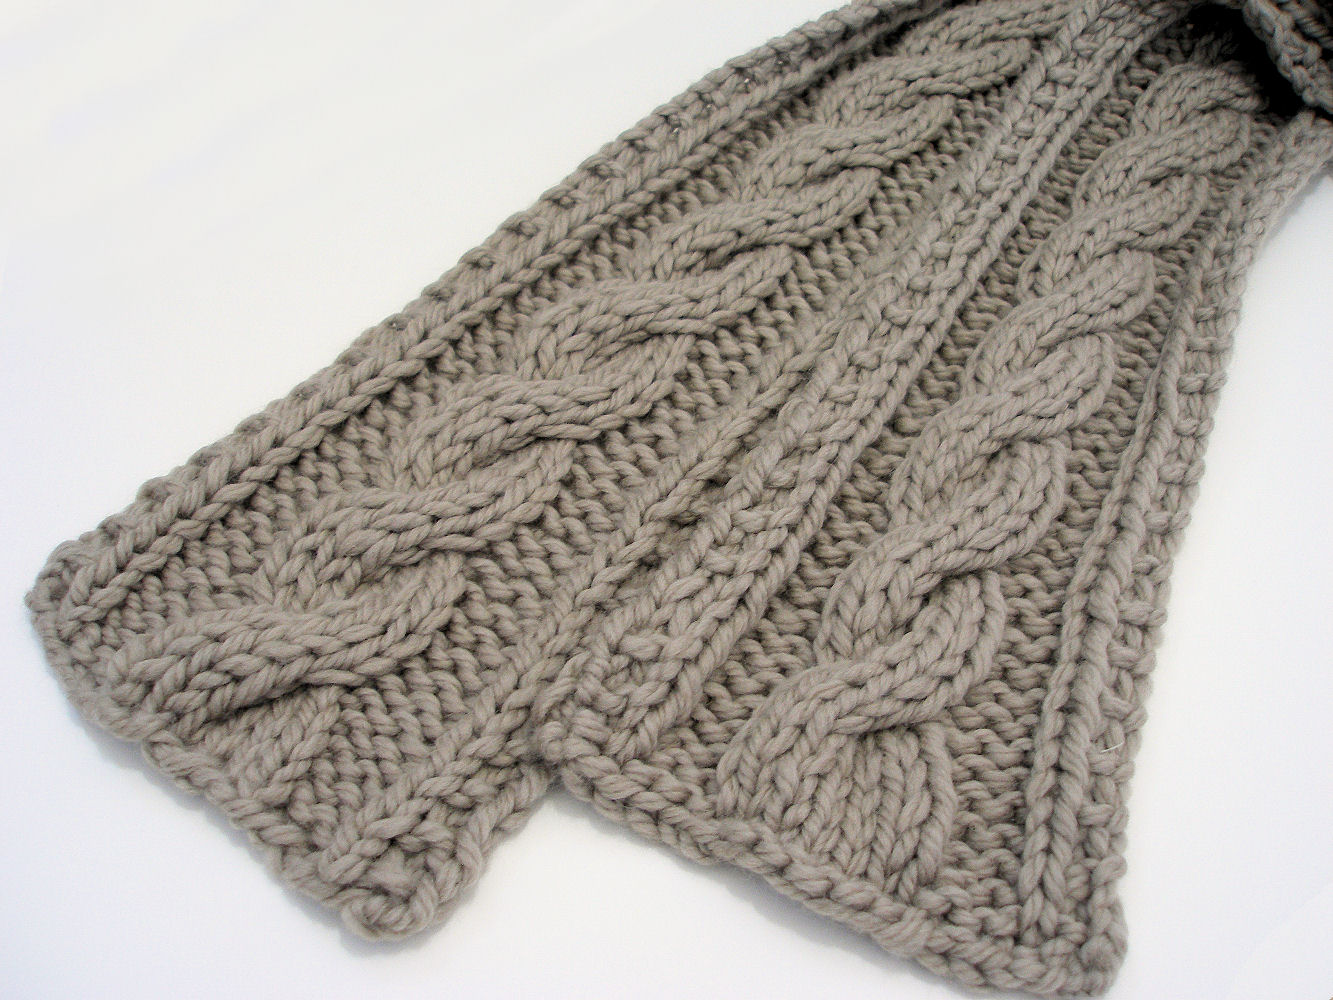 scarf pattern It is not my pattern It is a pattern from Knitting Crochet Children's Scarf Patterns Free